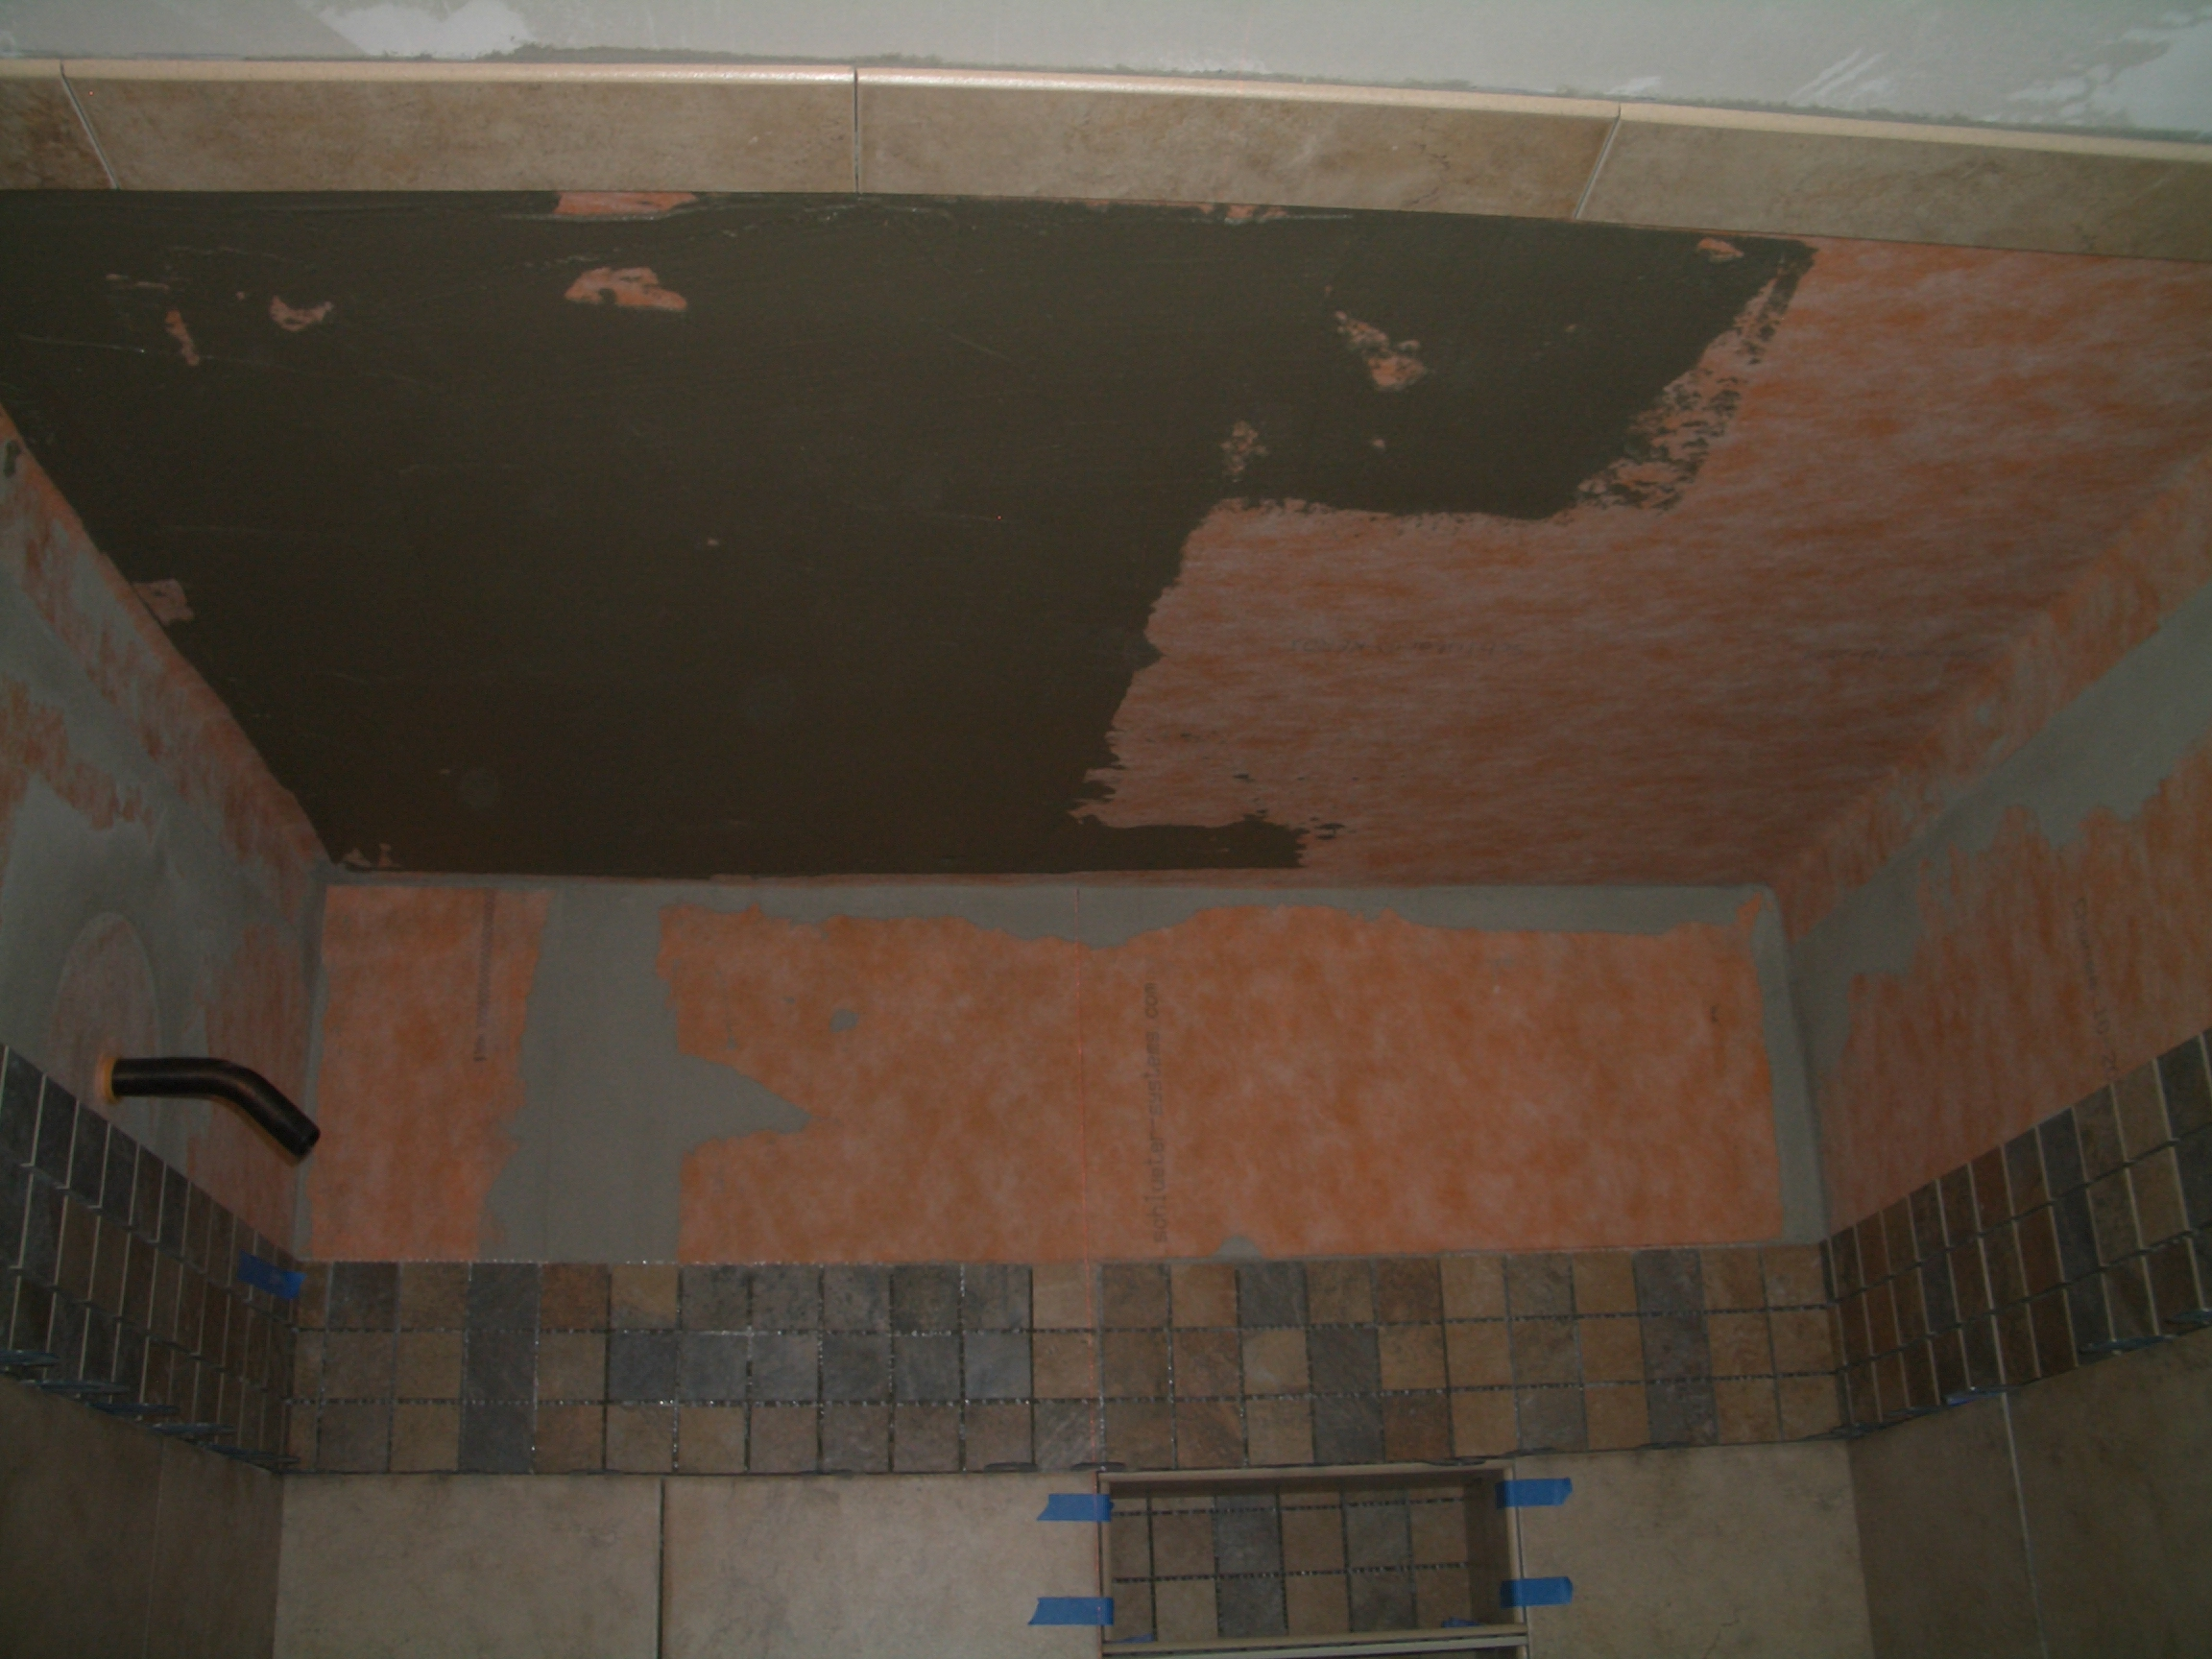 How to install tile on a shower ceiling - How to install ceramic tile on wall ...